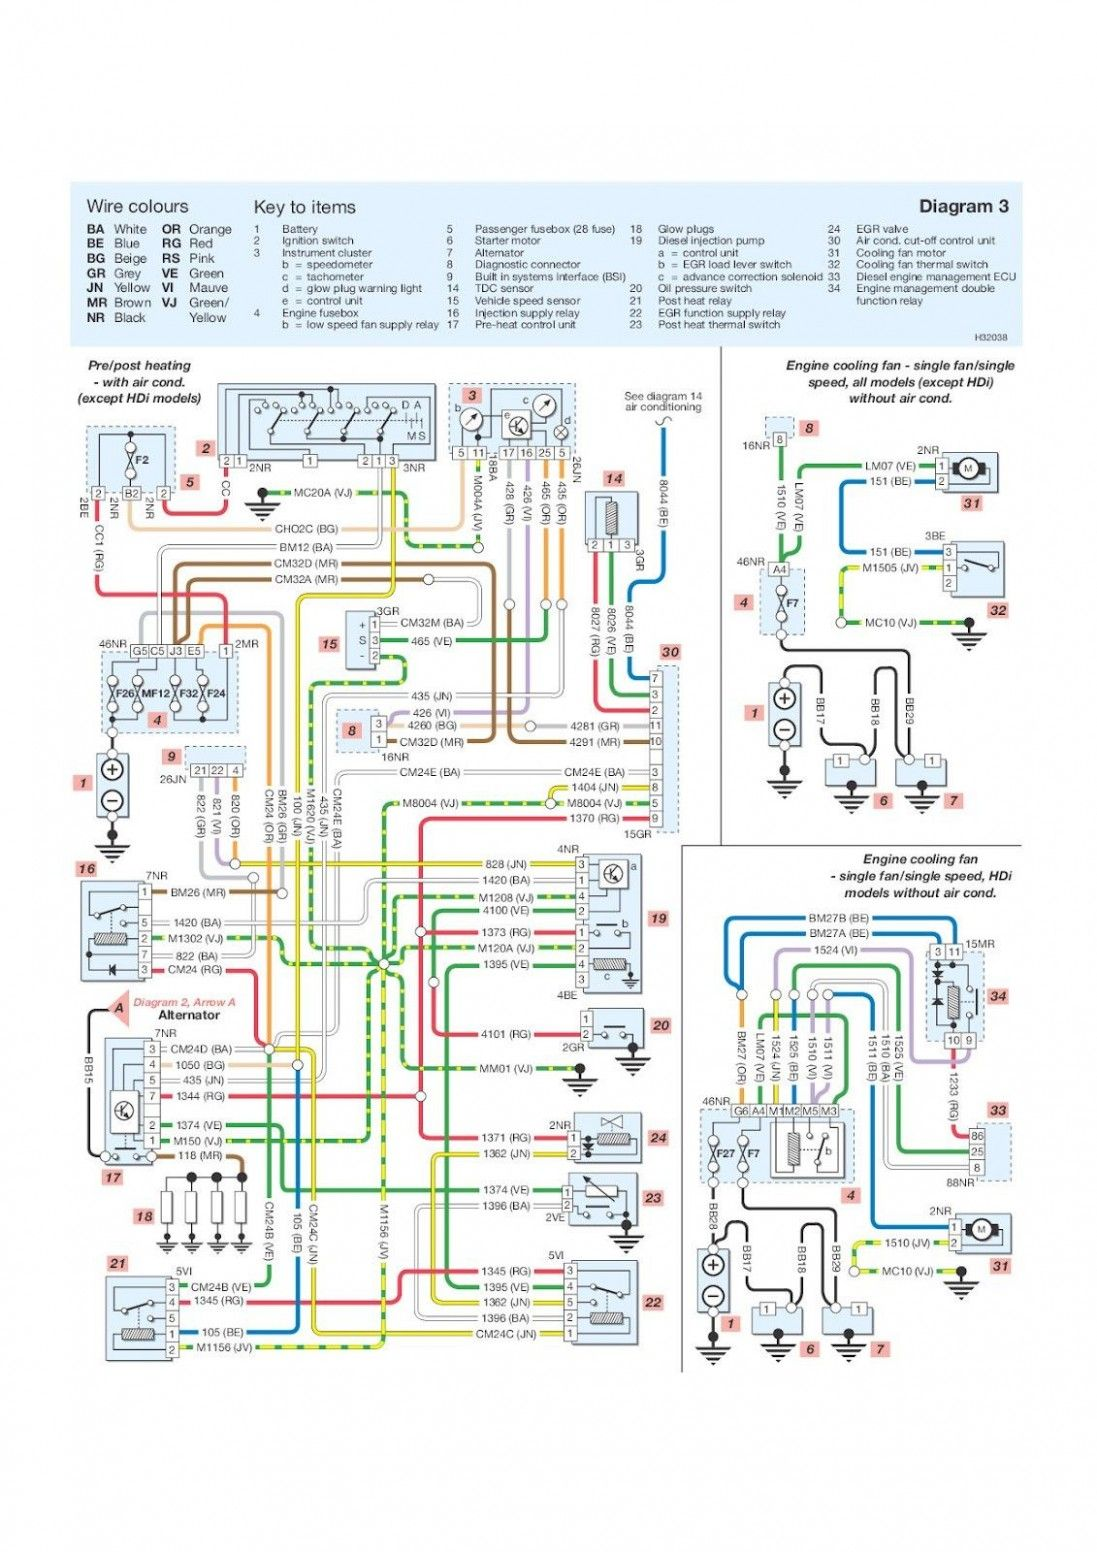 Engine Wiring Diagram Peugeot 8 Zet Peugeot Diagram Pre And Post